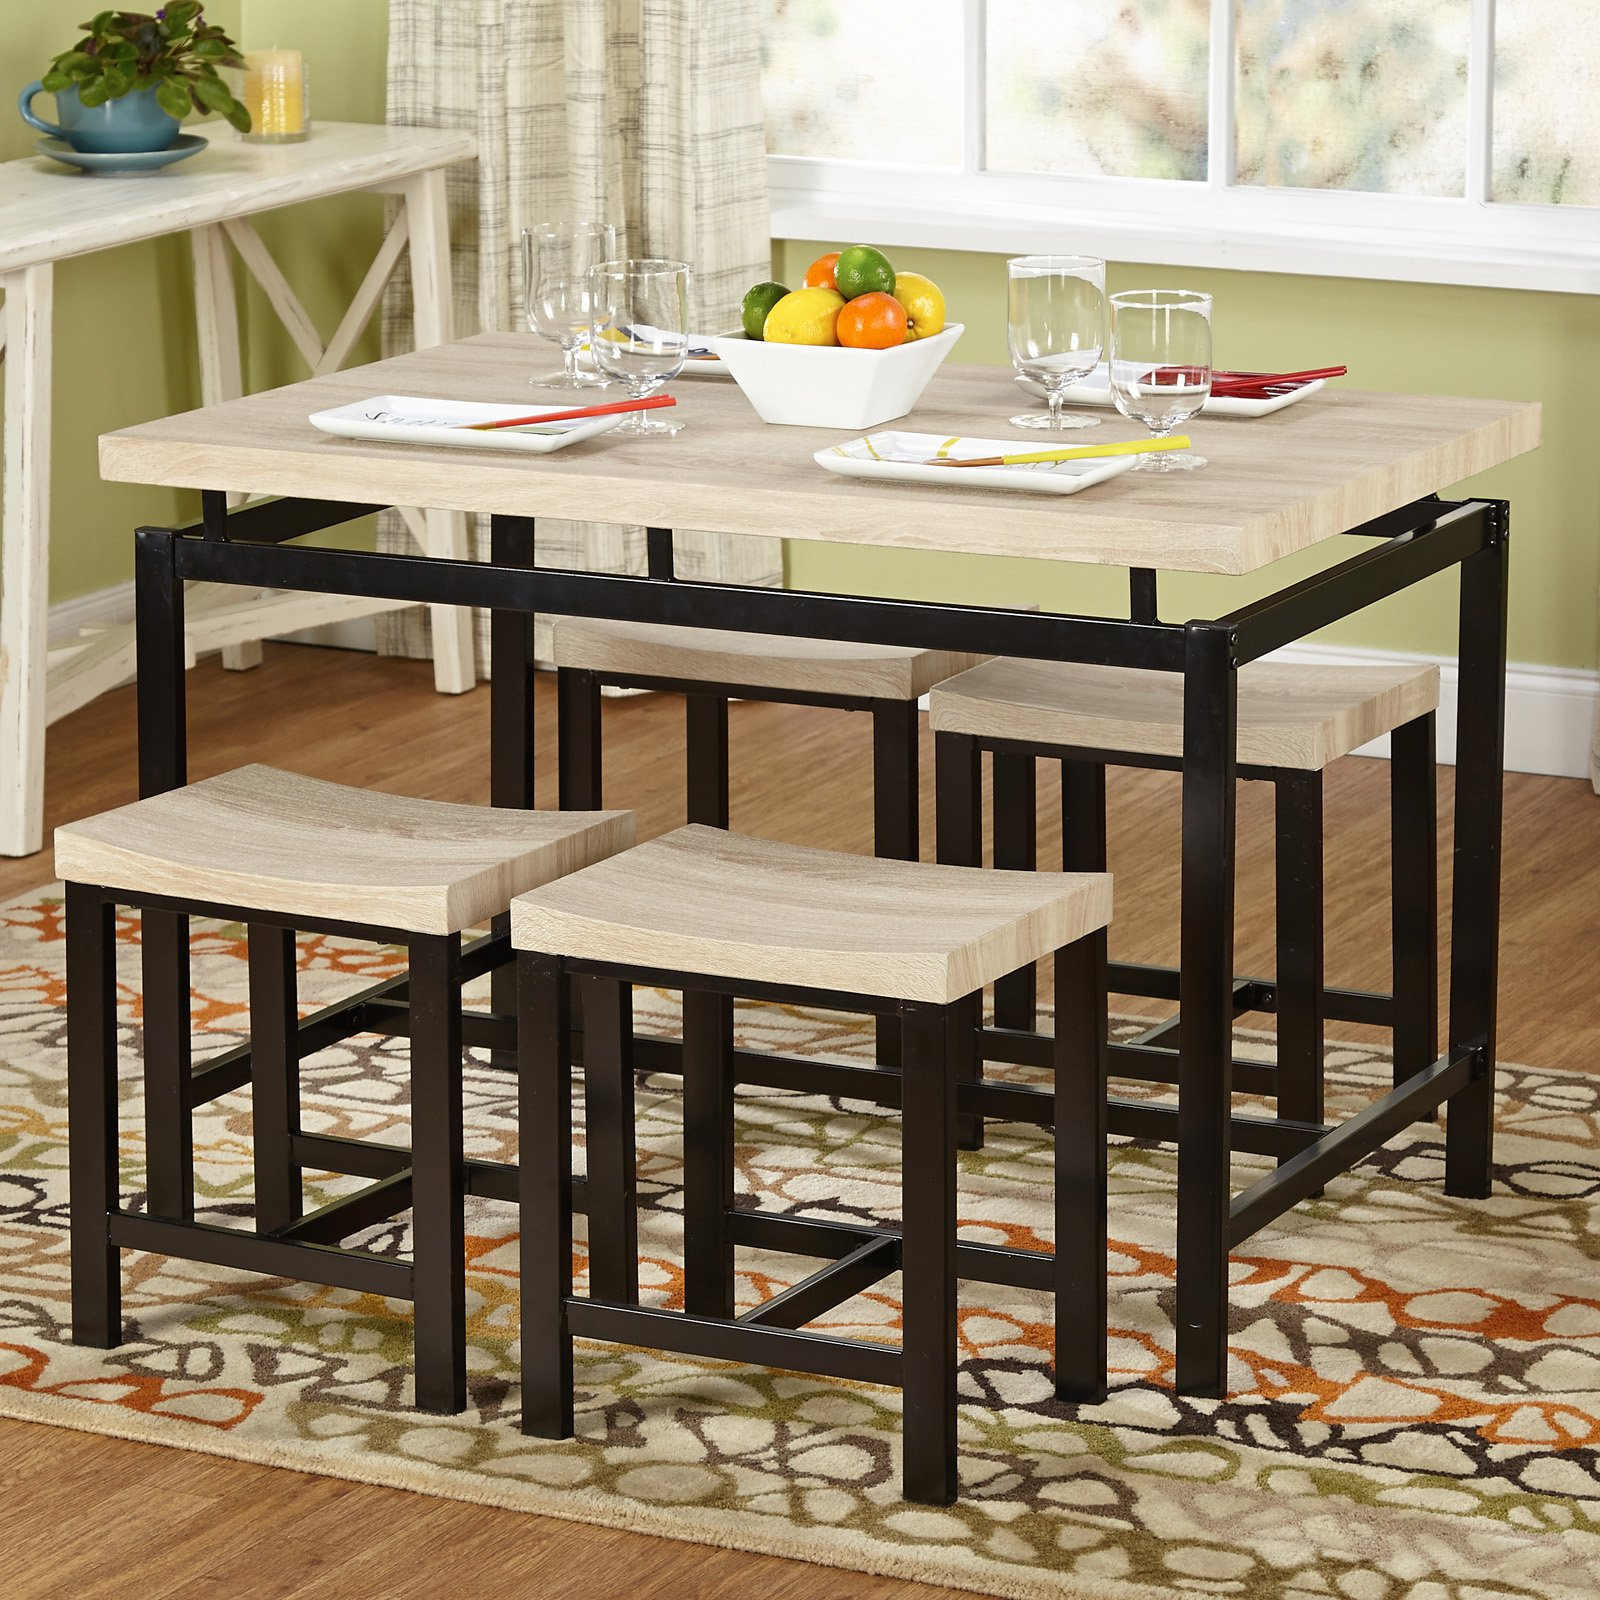 5 Piece Delano Dining Set Natural Walmart Com